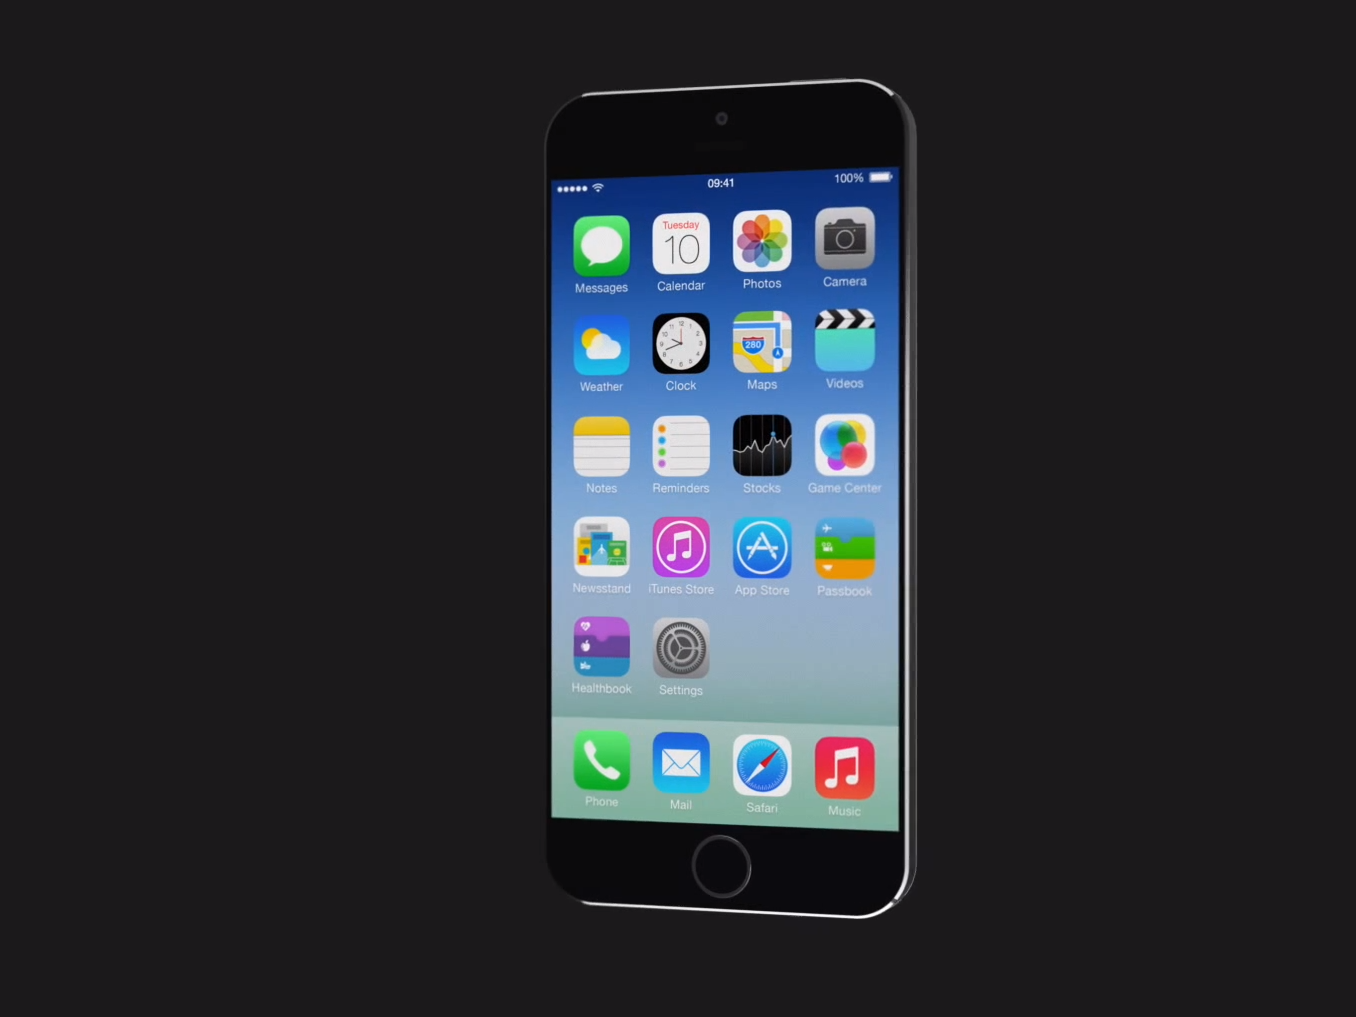 iphone-6-is-coming-in-september-and-it-will-be-in-two-sizes-with-a-higher-resolution-screen